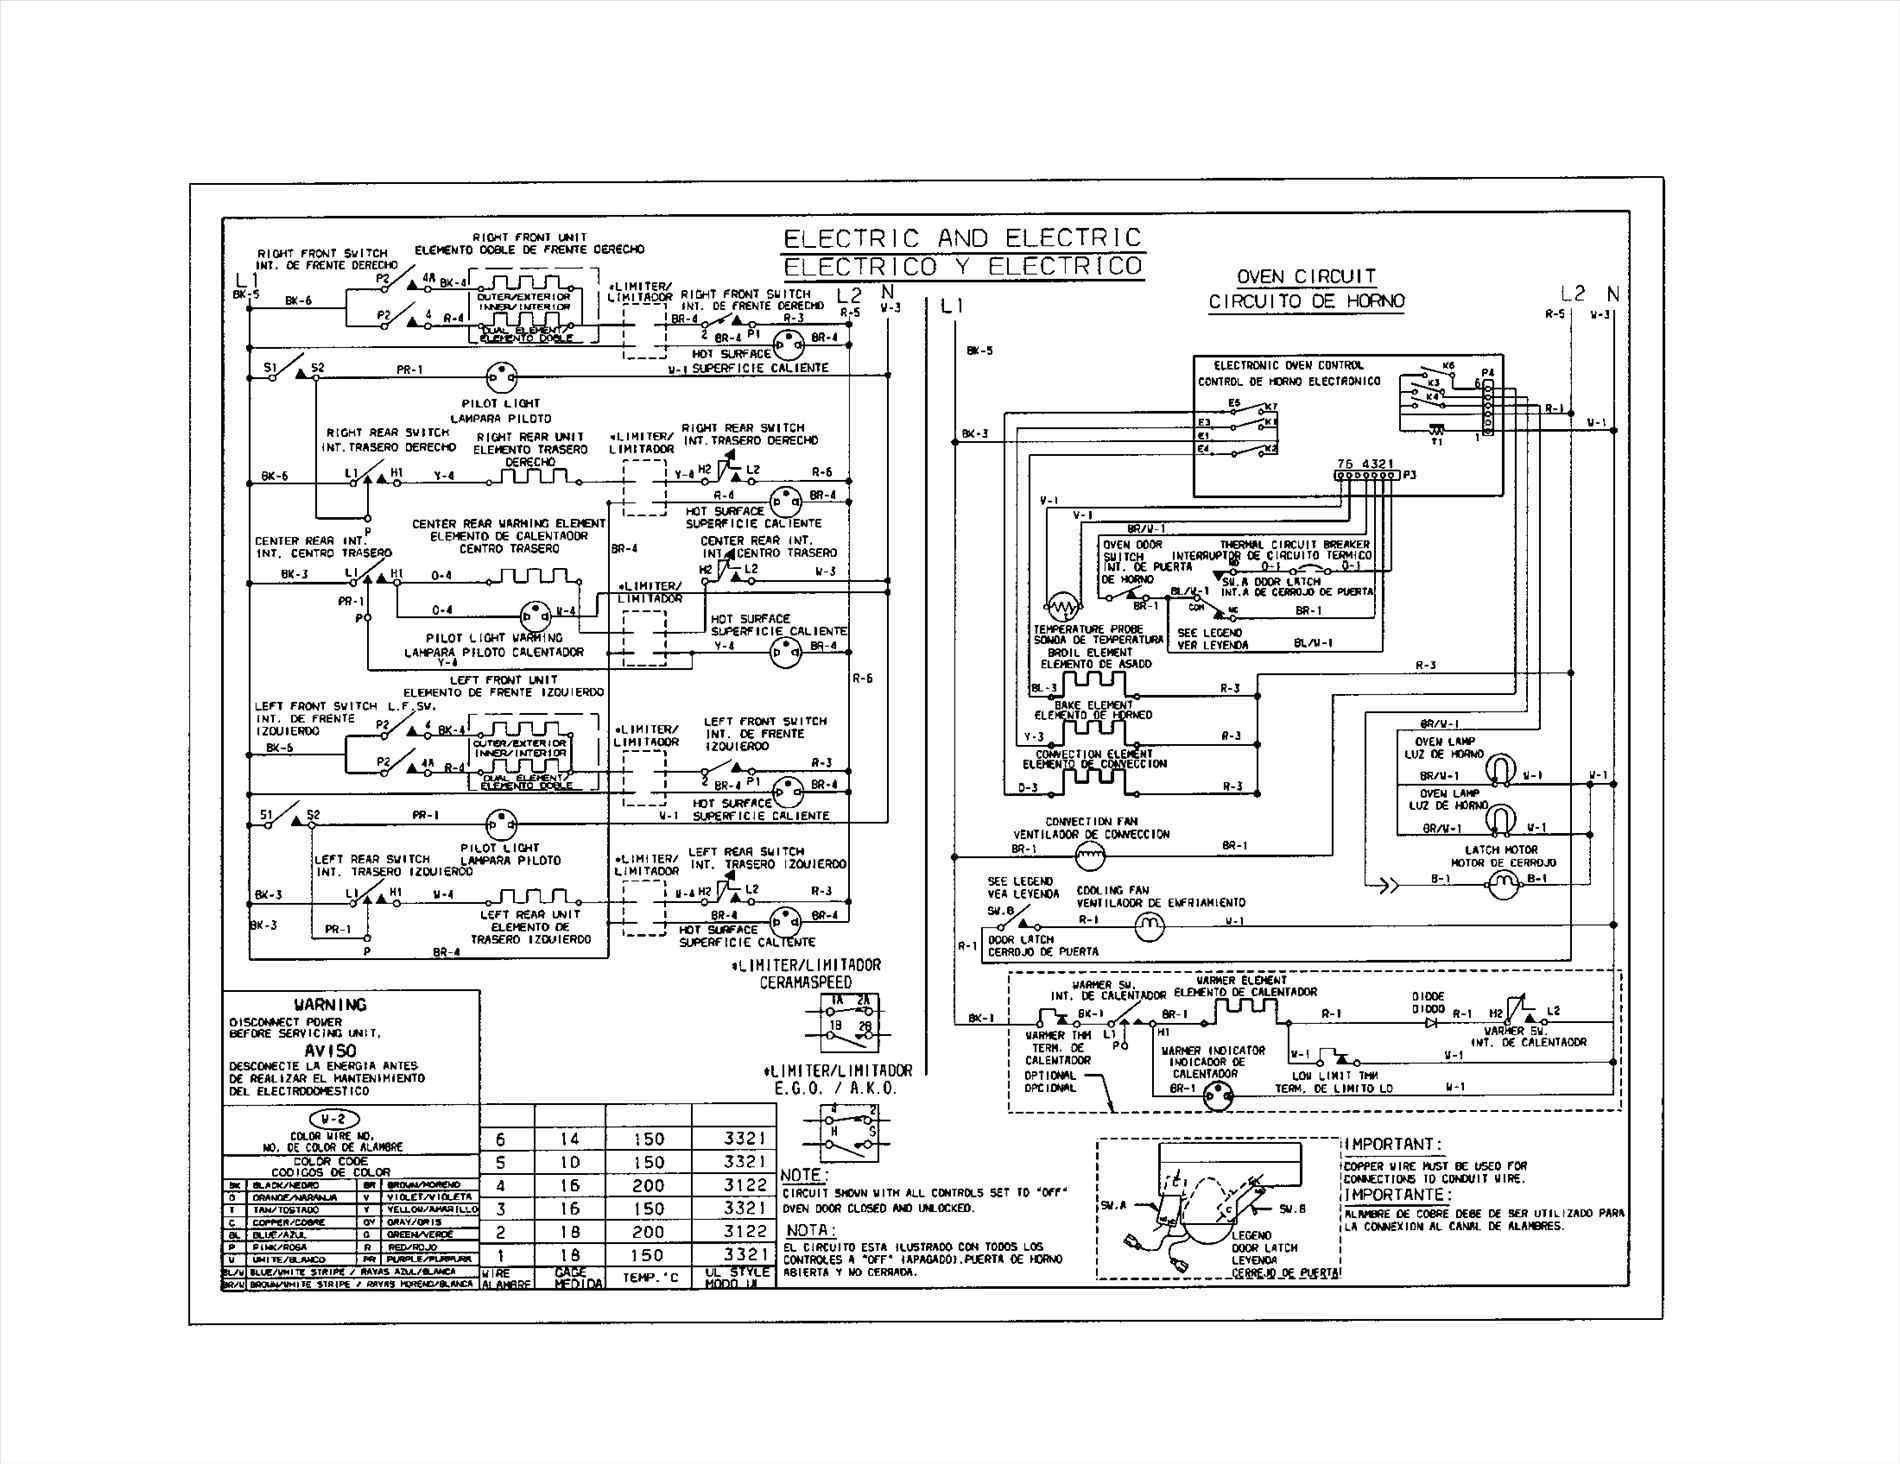 Related Post Whirlpool Ler4634eq2 New Whirlpool Dryer Wiring Diagram  Natebird from whirlpool ler4634eq2 ...